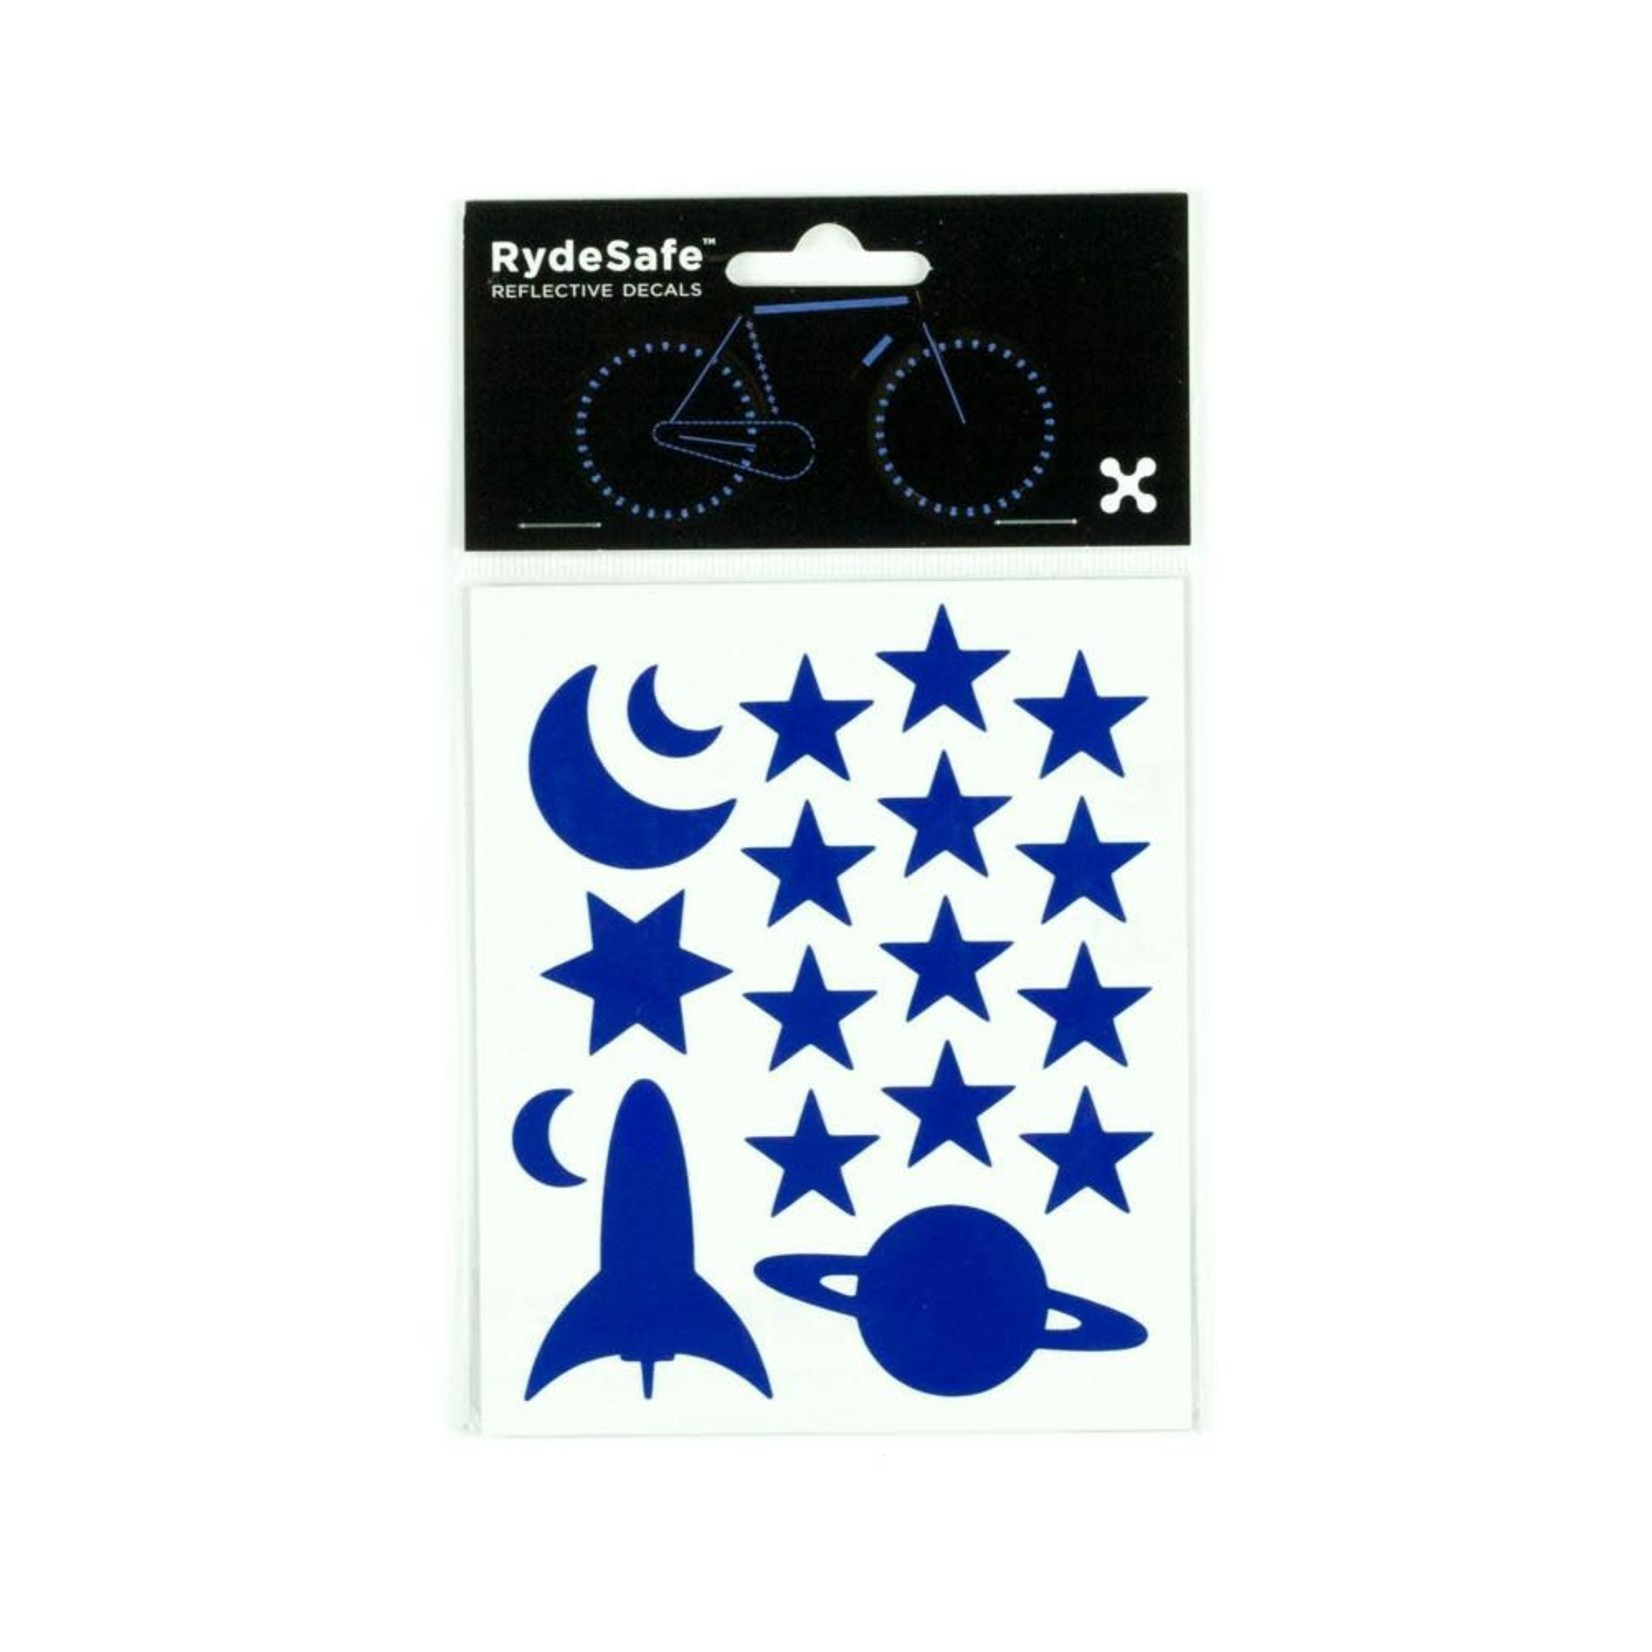 Rydesafe Reflective Outer Space Stickers